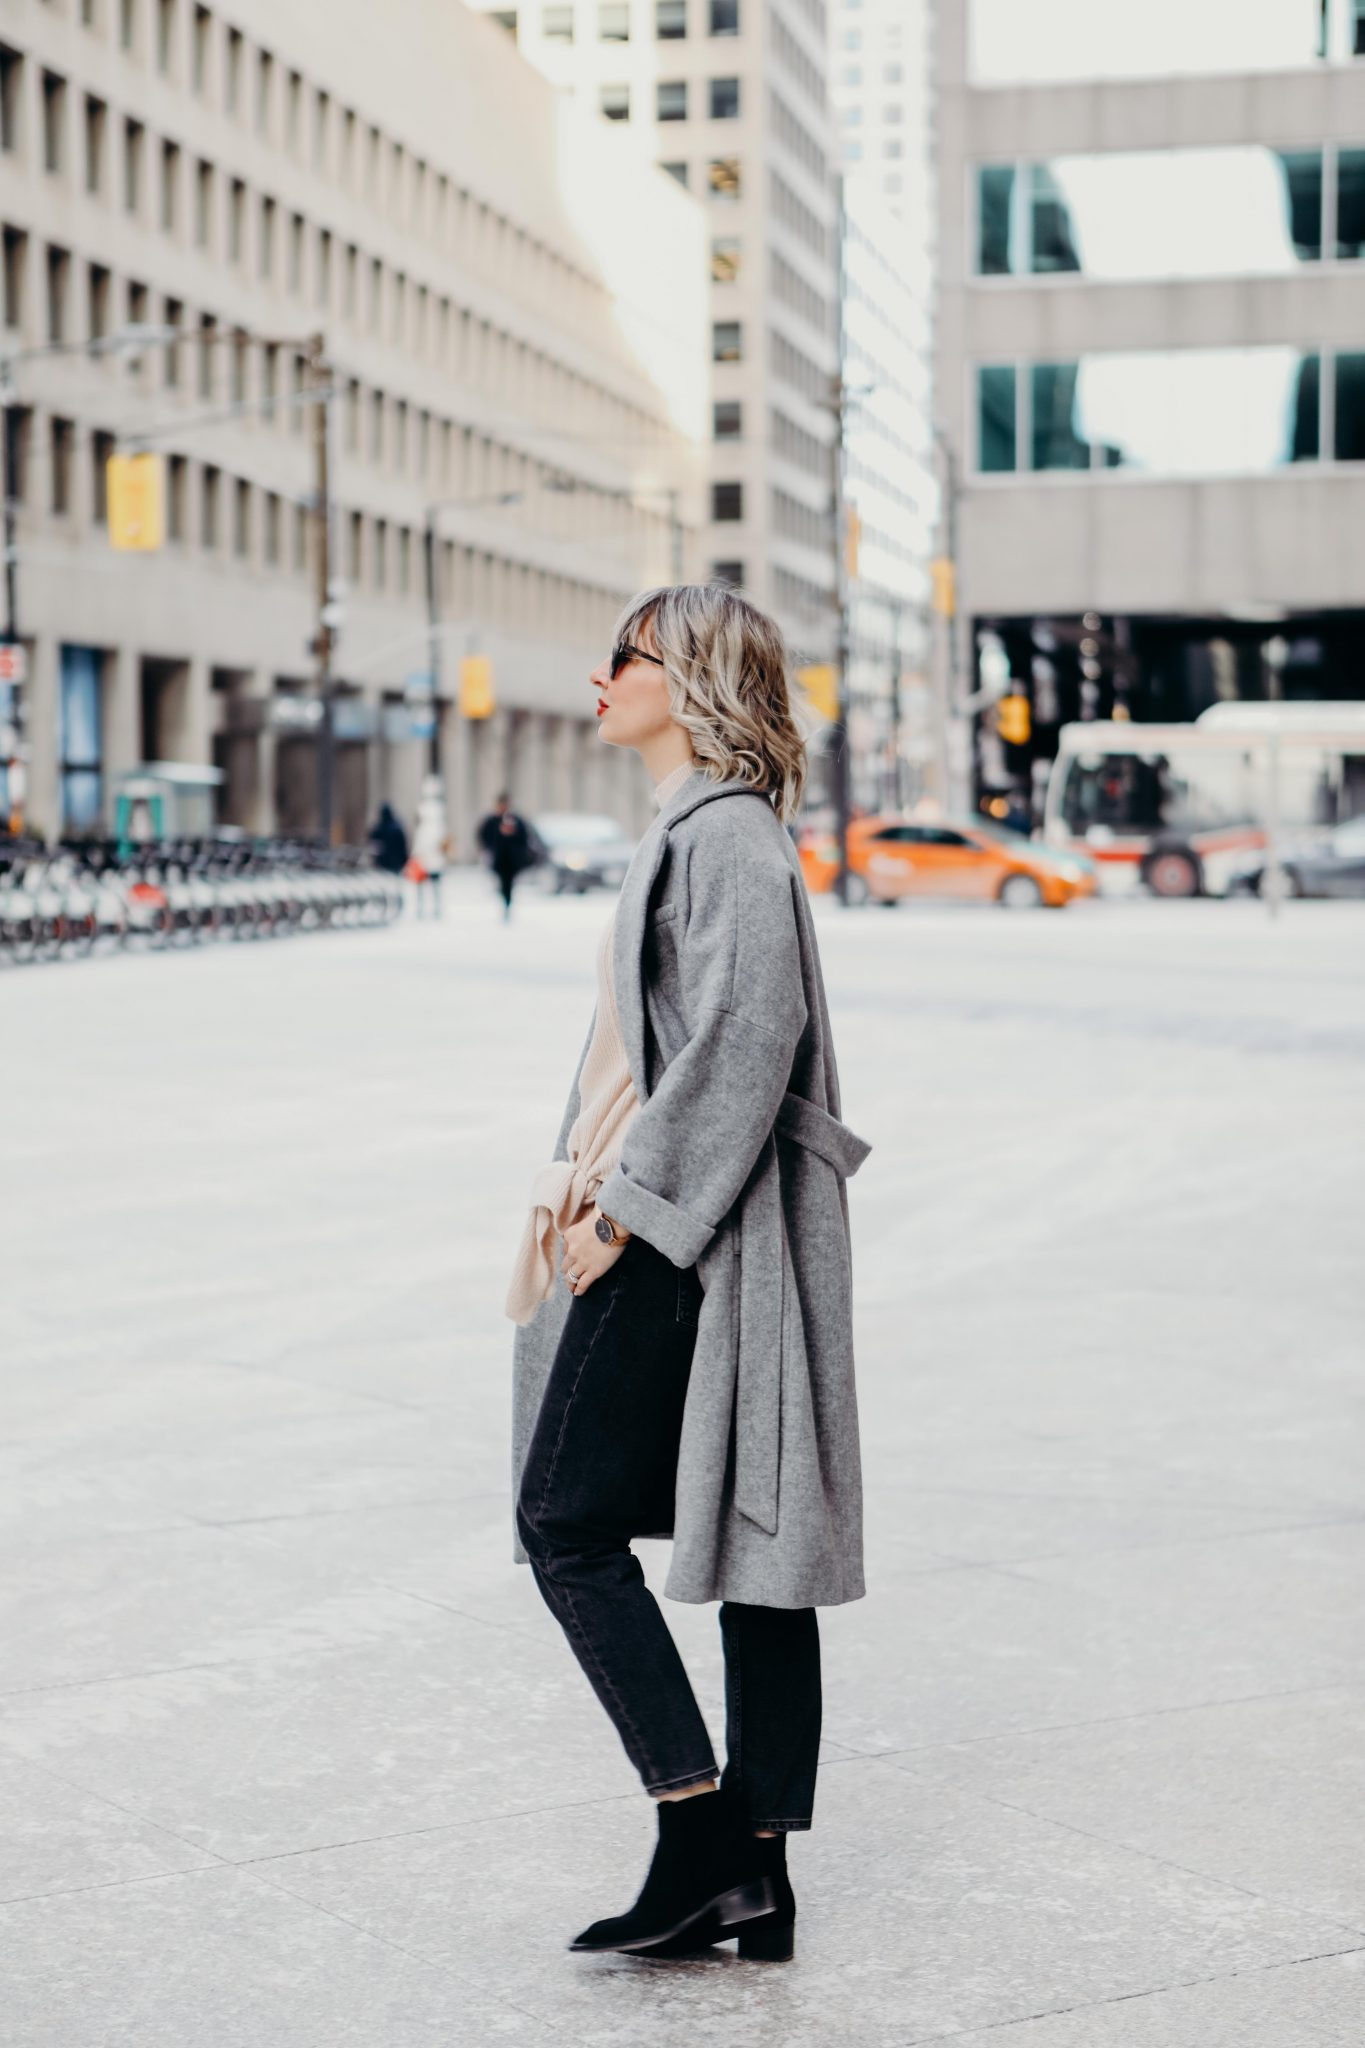 long coat style in the city (2 of 7)